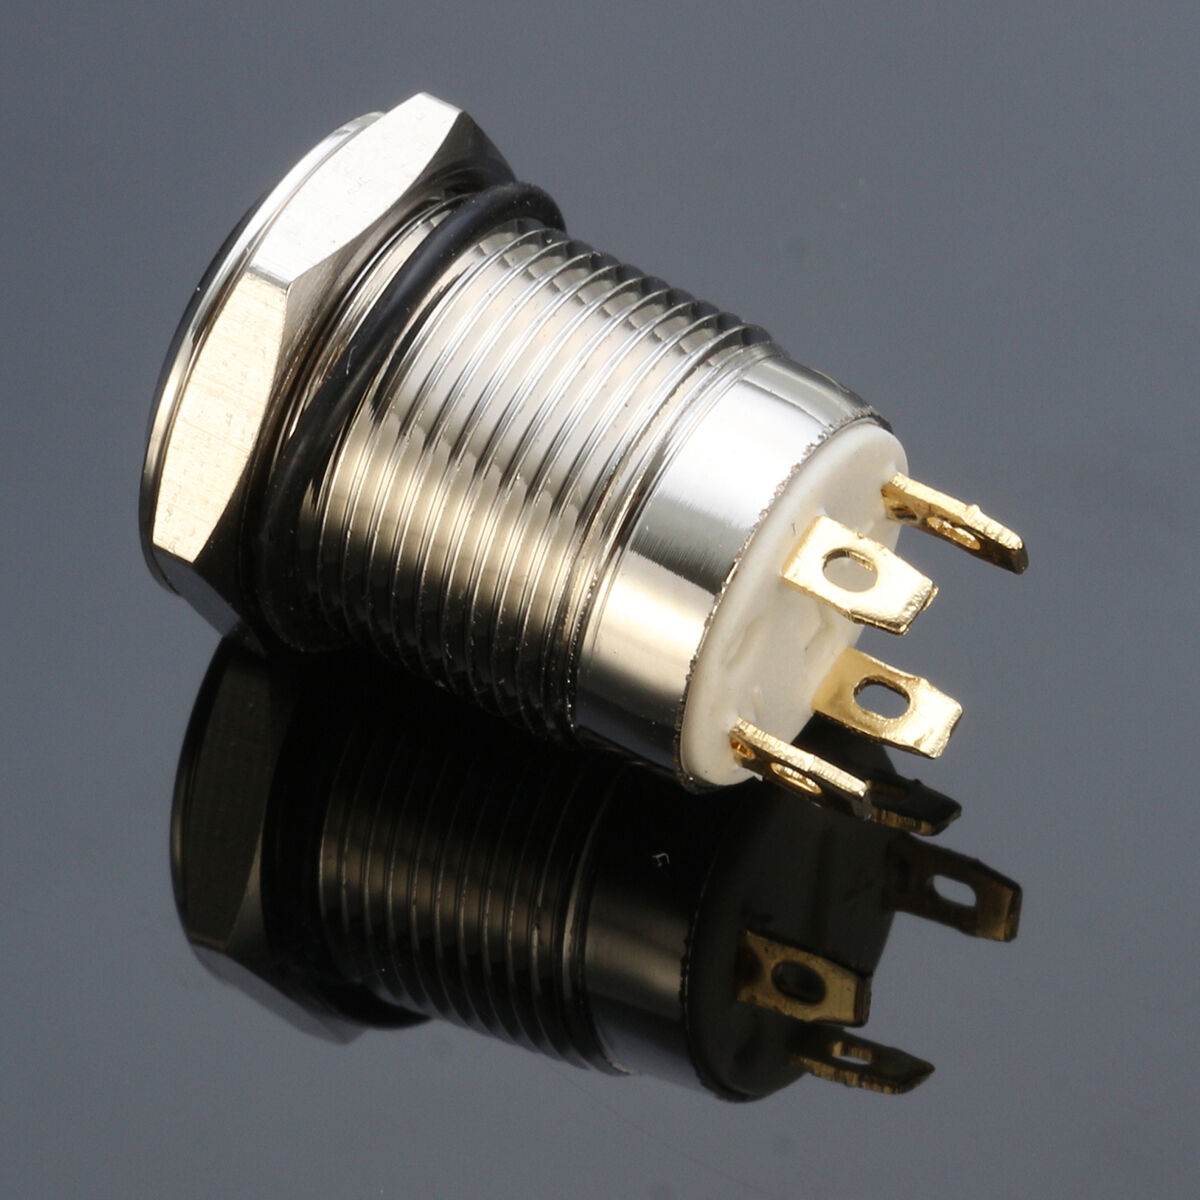 Details about 12V Chrome 4 Pin Led Light 12mm Metal Push on Momentary on